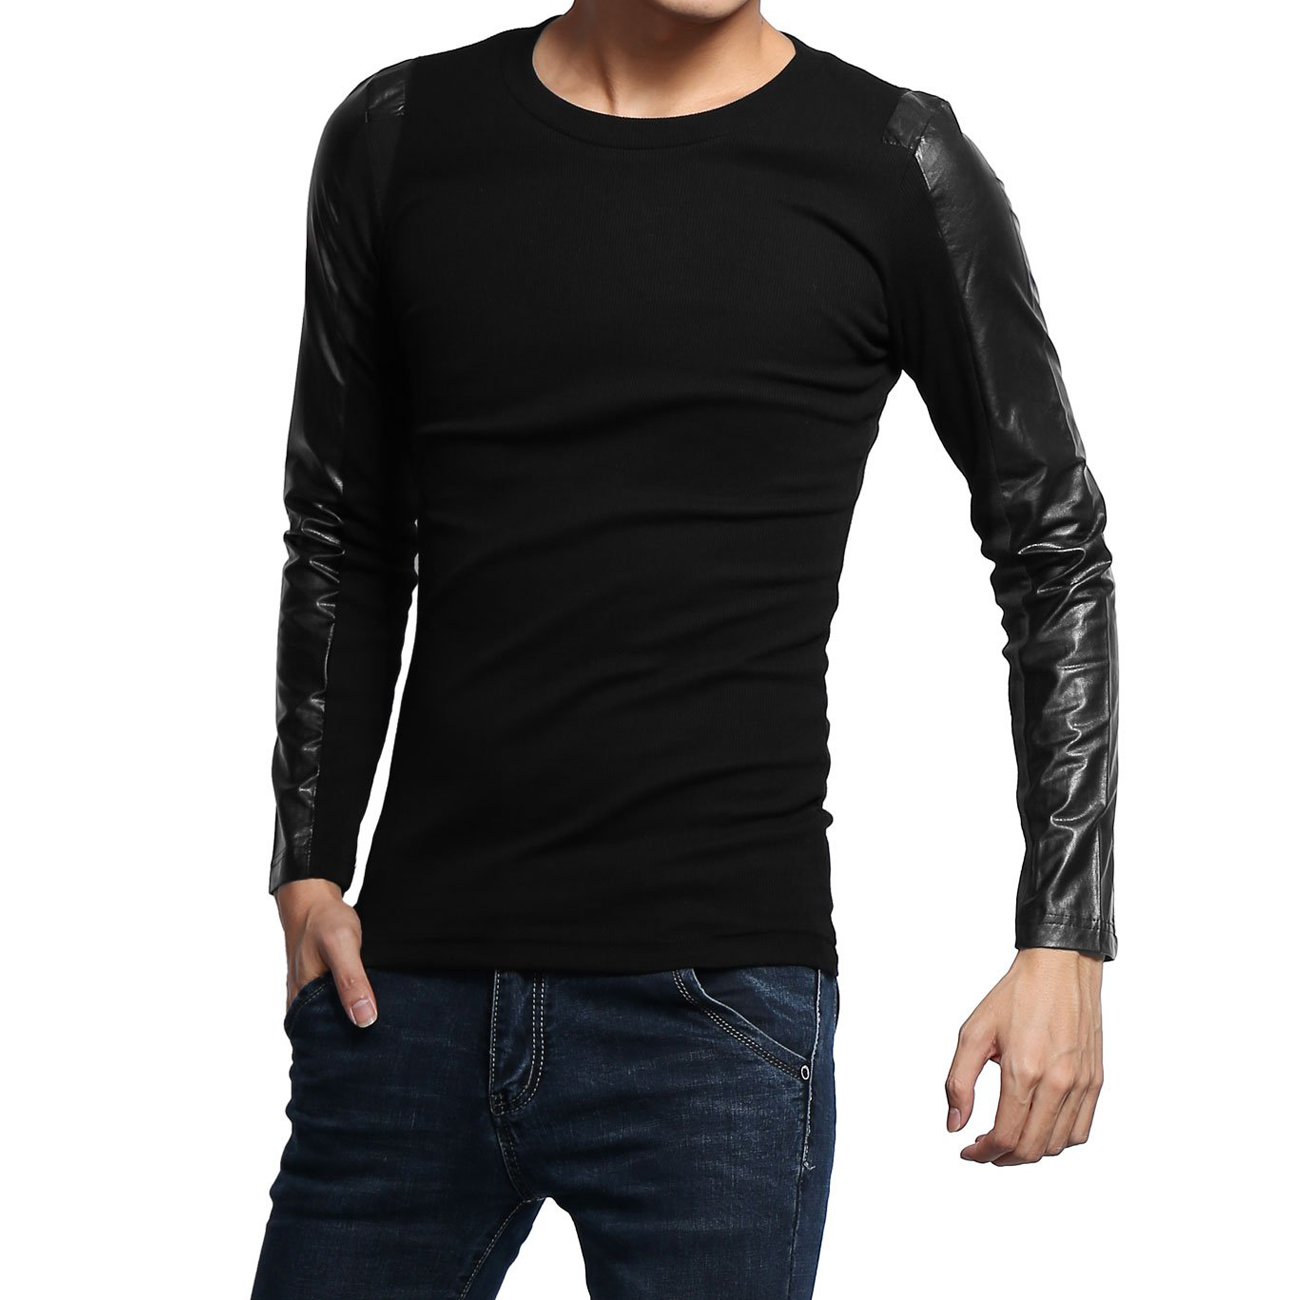 Men's Long Sleeve Gothic Shirts Do you find it difficult to dress with gothic style when winter comes? If so, be sure to check out the large assortment of mens long-sleeved gothic shirts offered here at Medieval Collectibles.